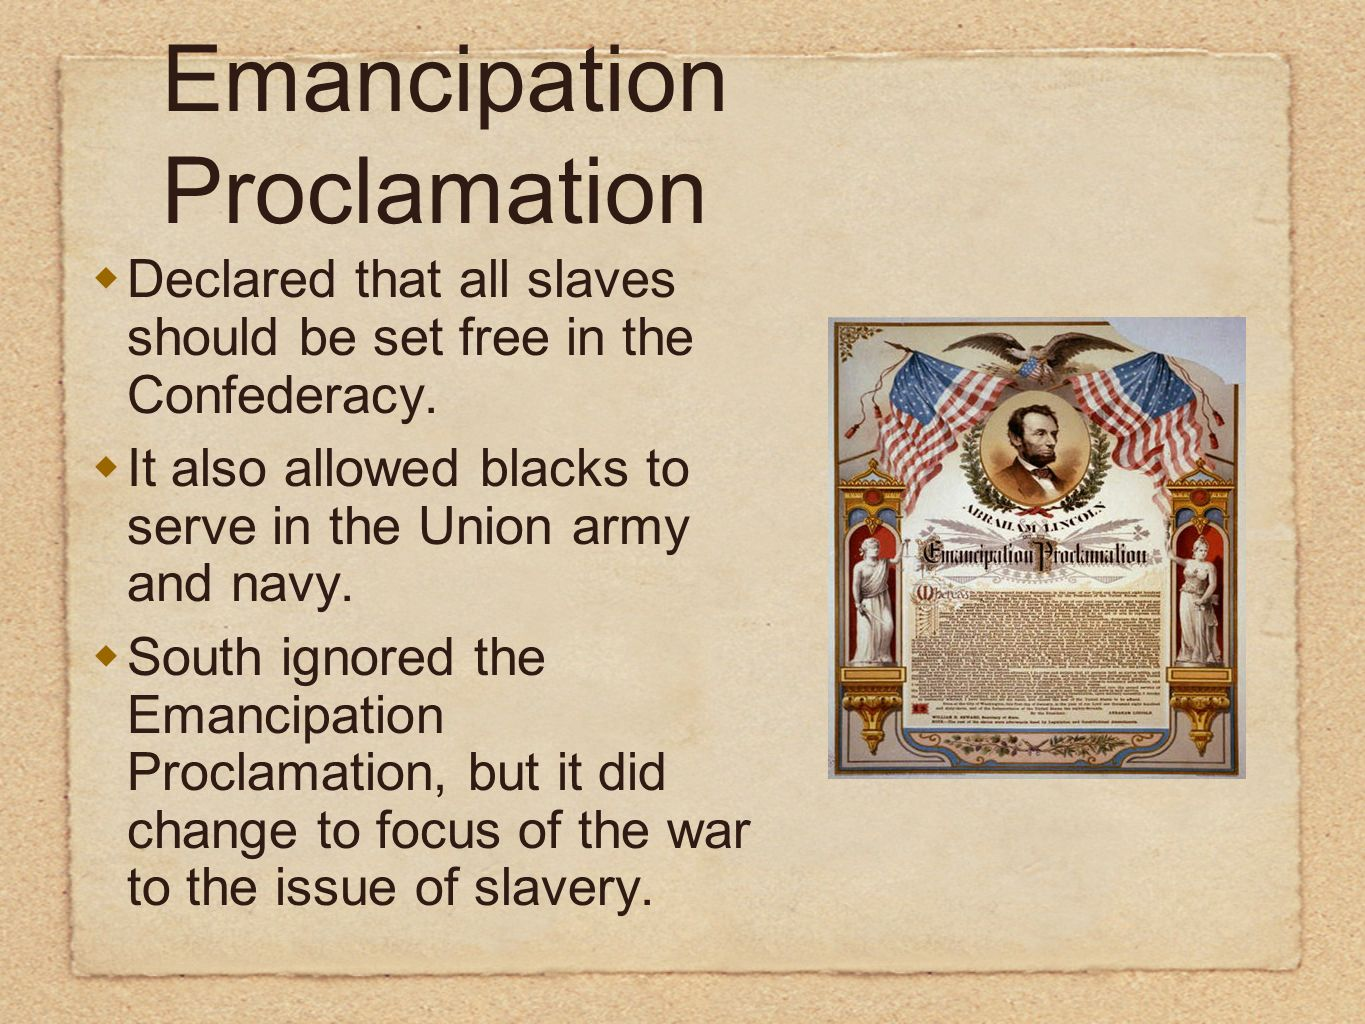 Declared that all slaves should be set free in the Confederacy. It also allowed blacks to serve in the Union army and navy. South ignored the Emancipa